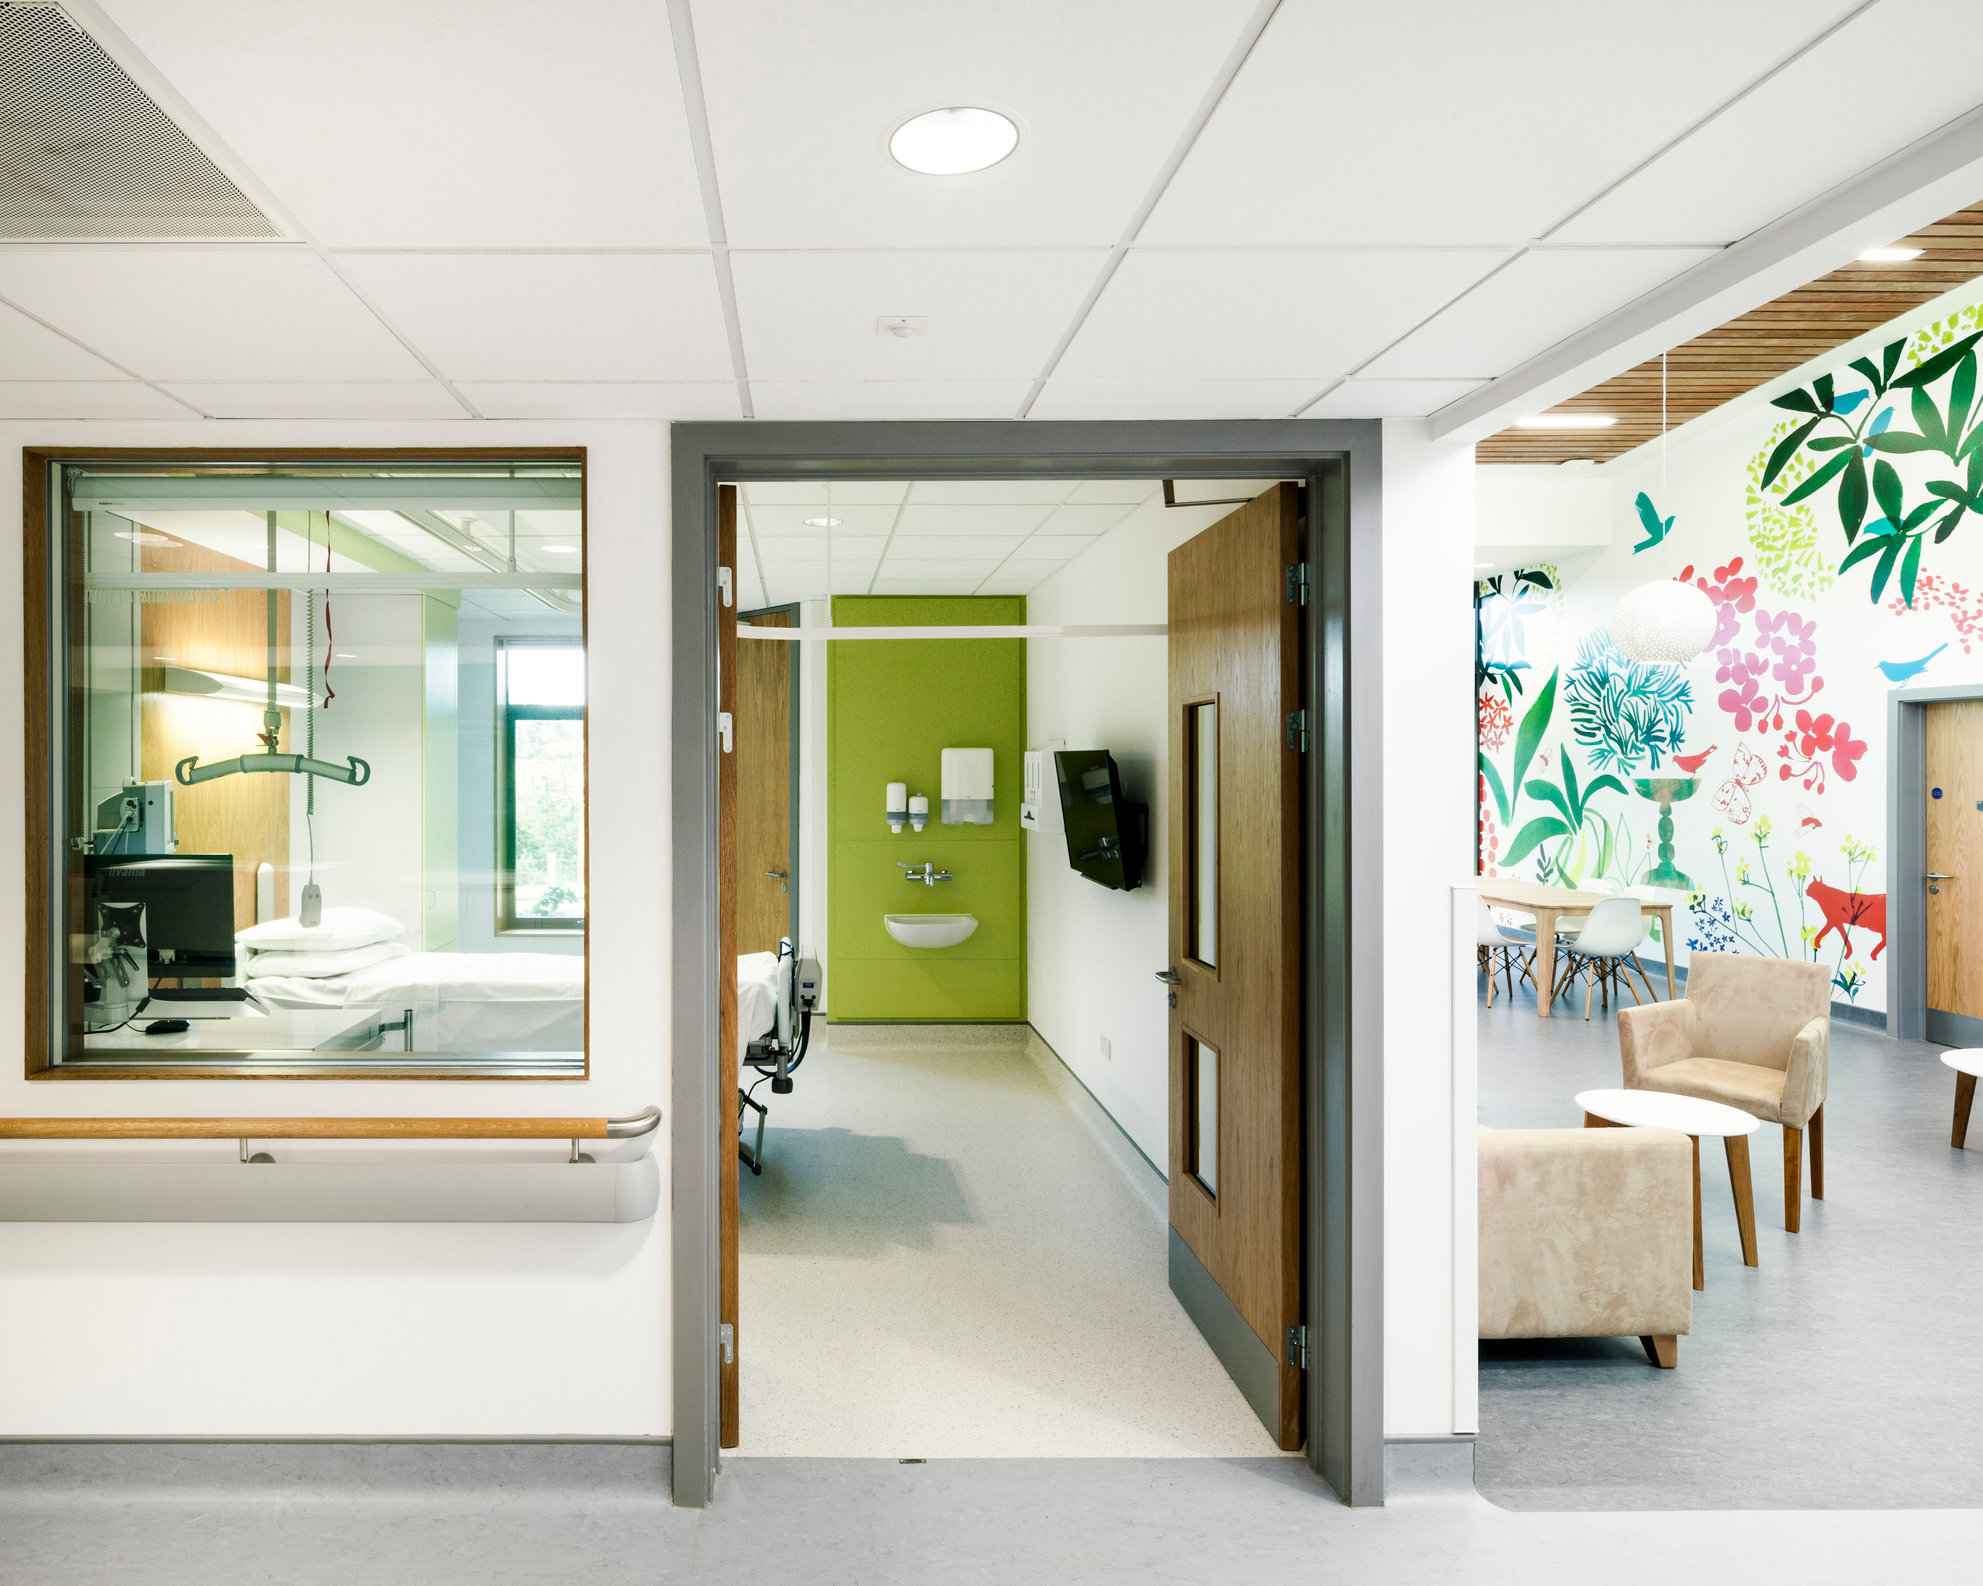 Lane Fox Remo Respiratory Centre - East Surrey Hospital. Murphy Phillips Architects